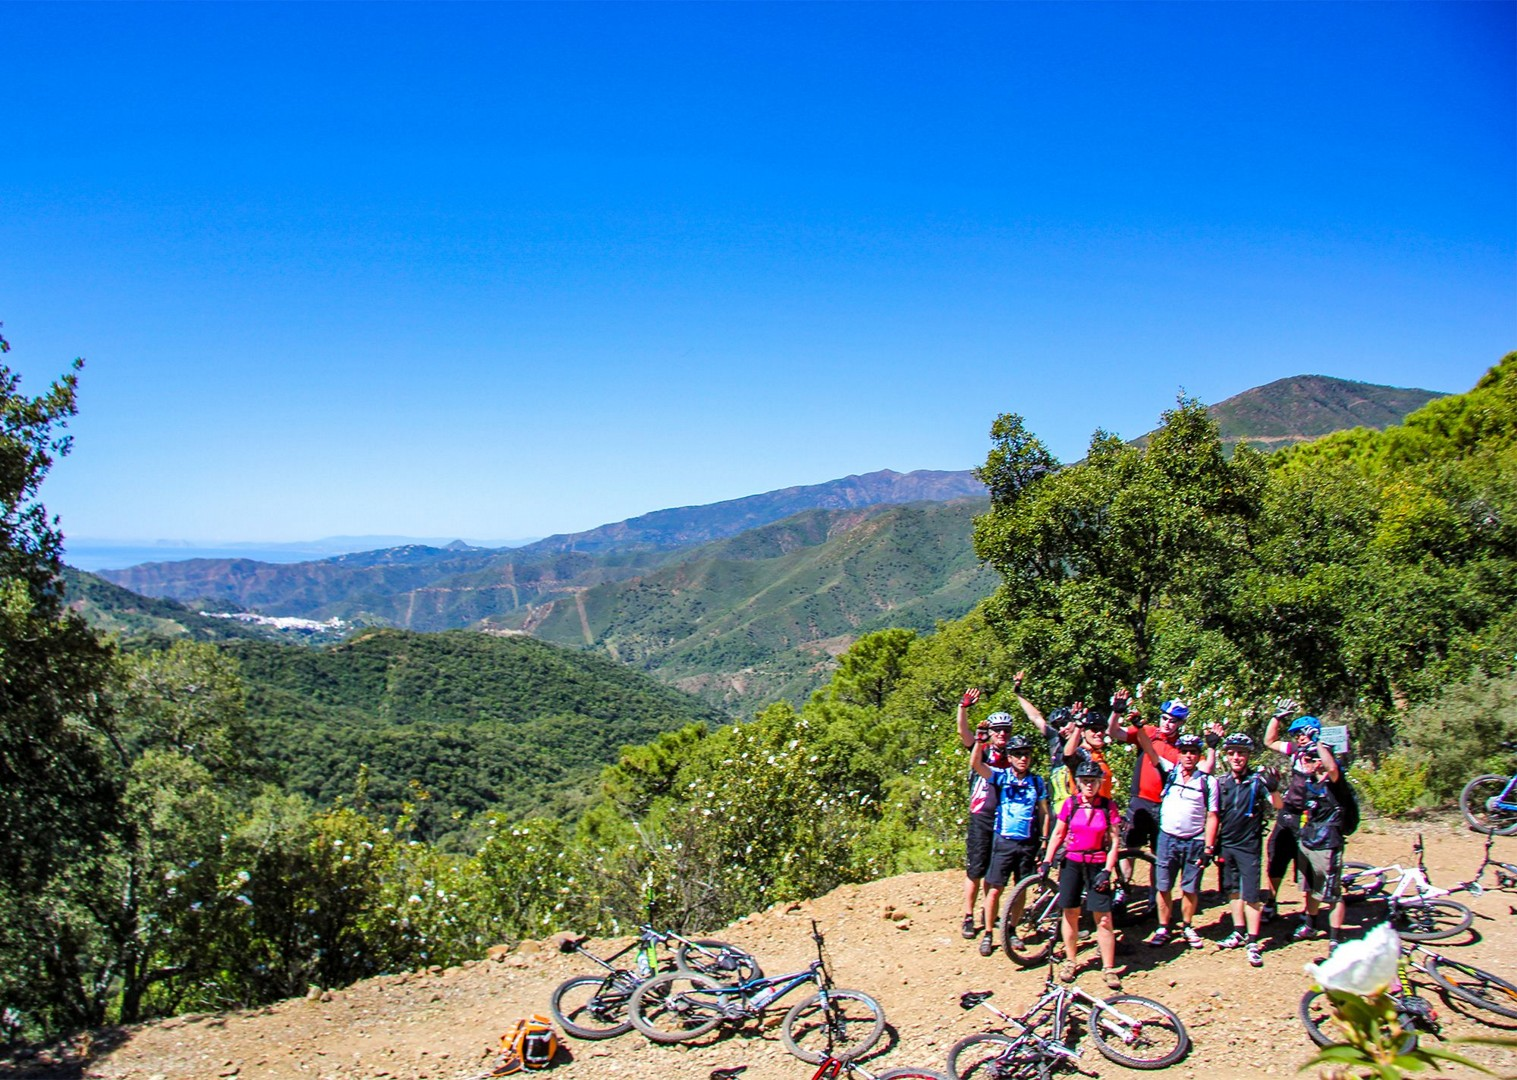 transandaluz7.jpg - Spain - Trans Andaluz - Guided Mountain Bike Holiday - Mountain Biking